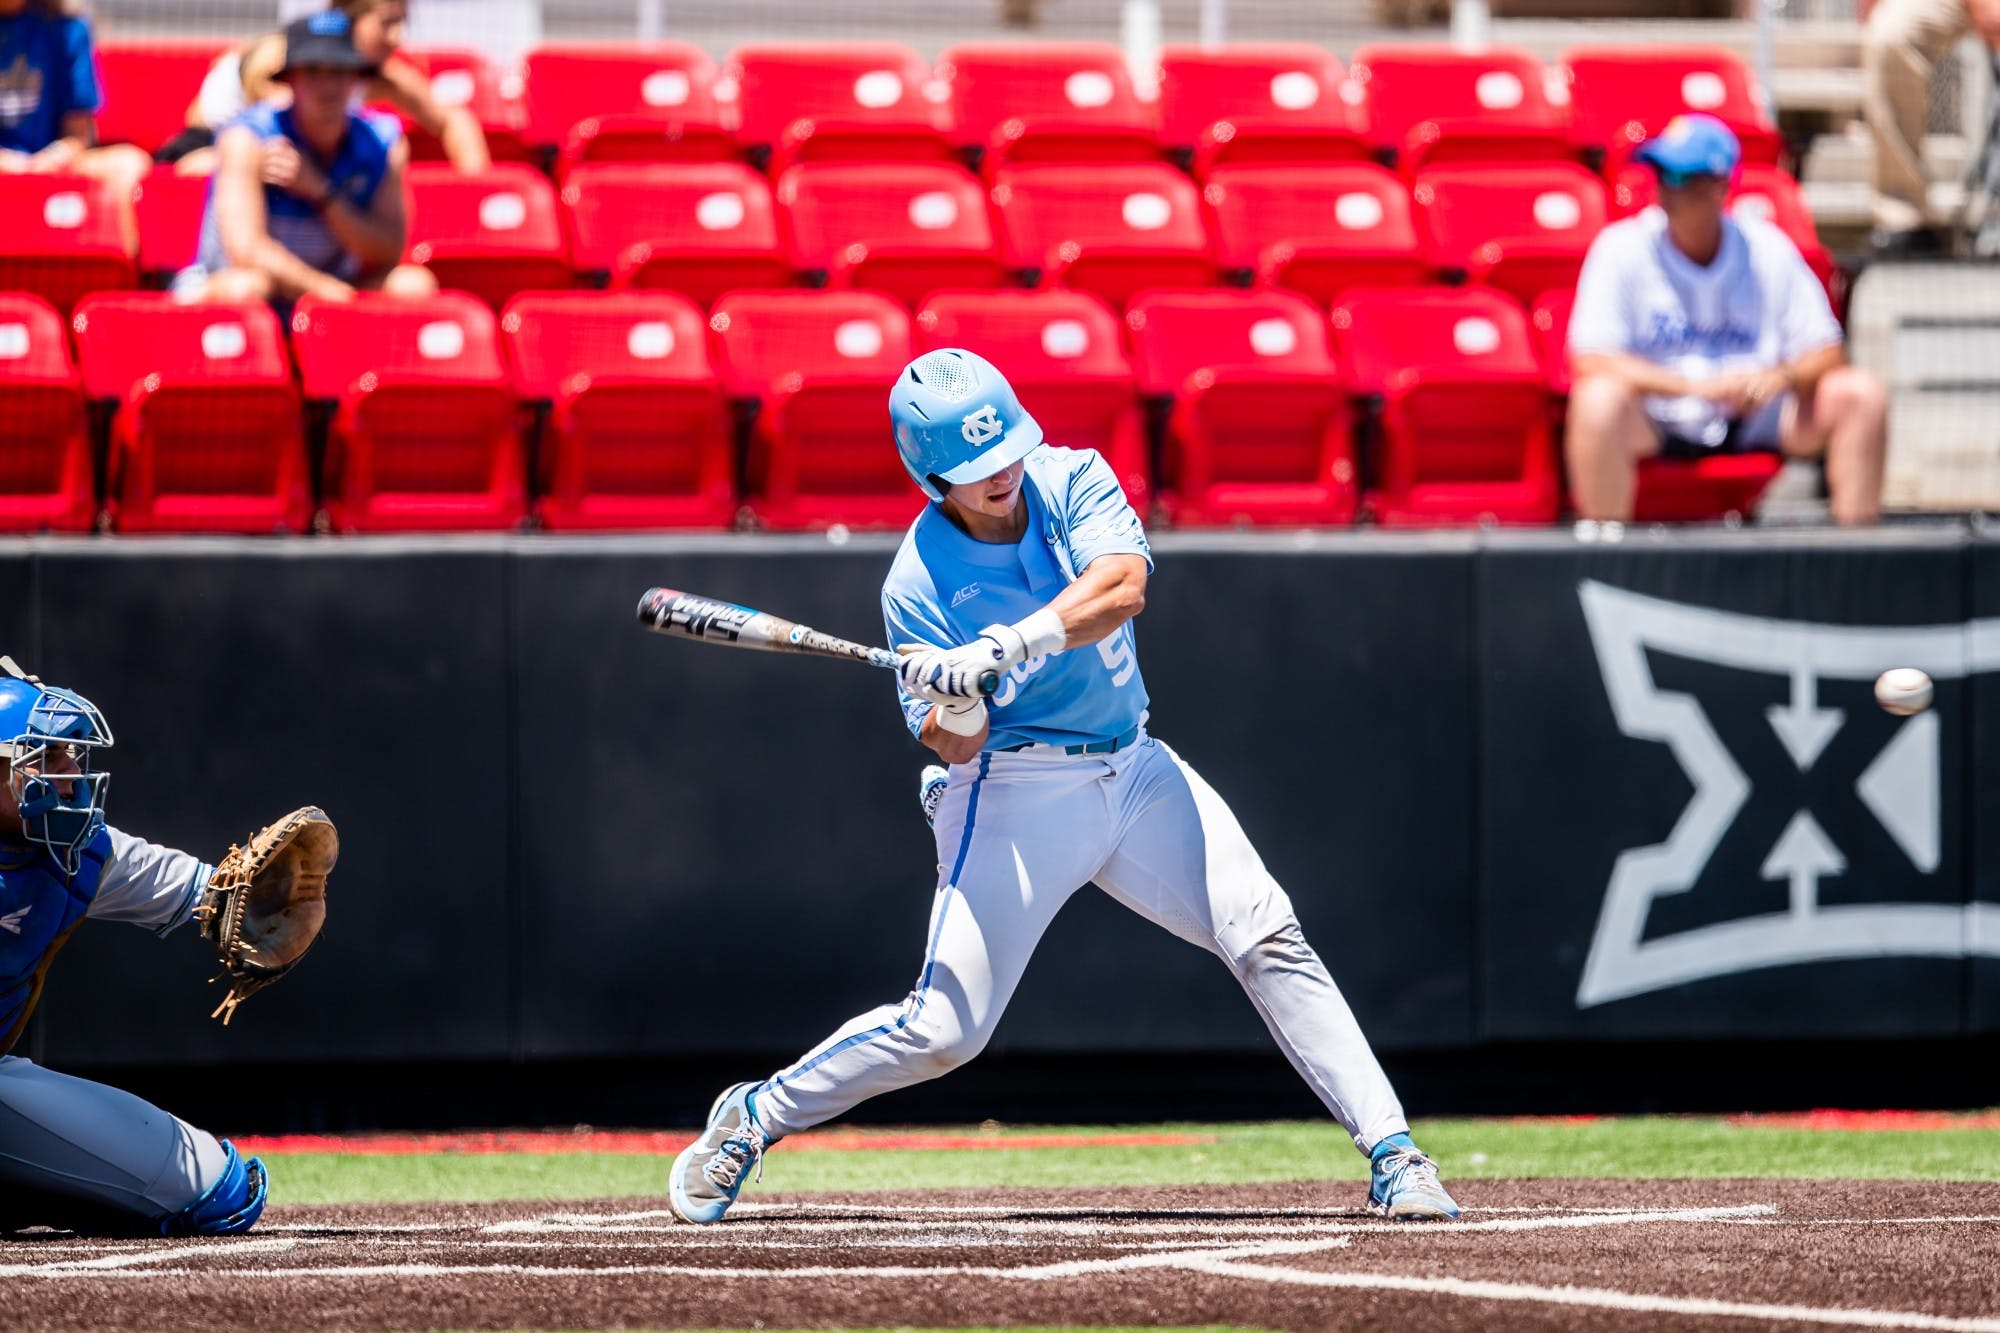 Even after early exit in NCAA regionals, UNC baseball has a bright future